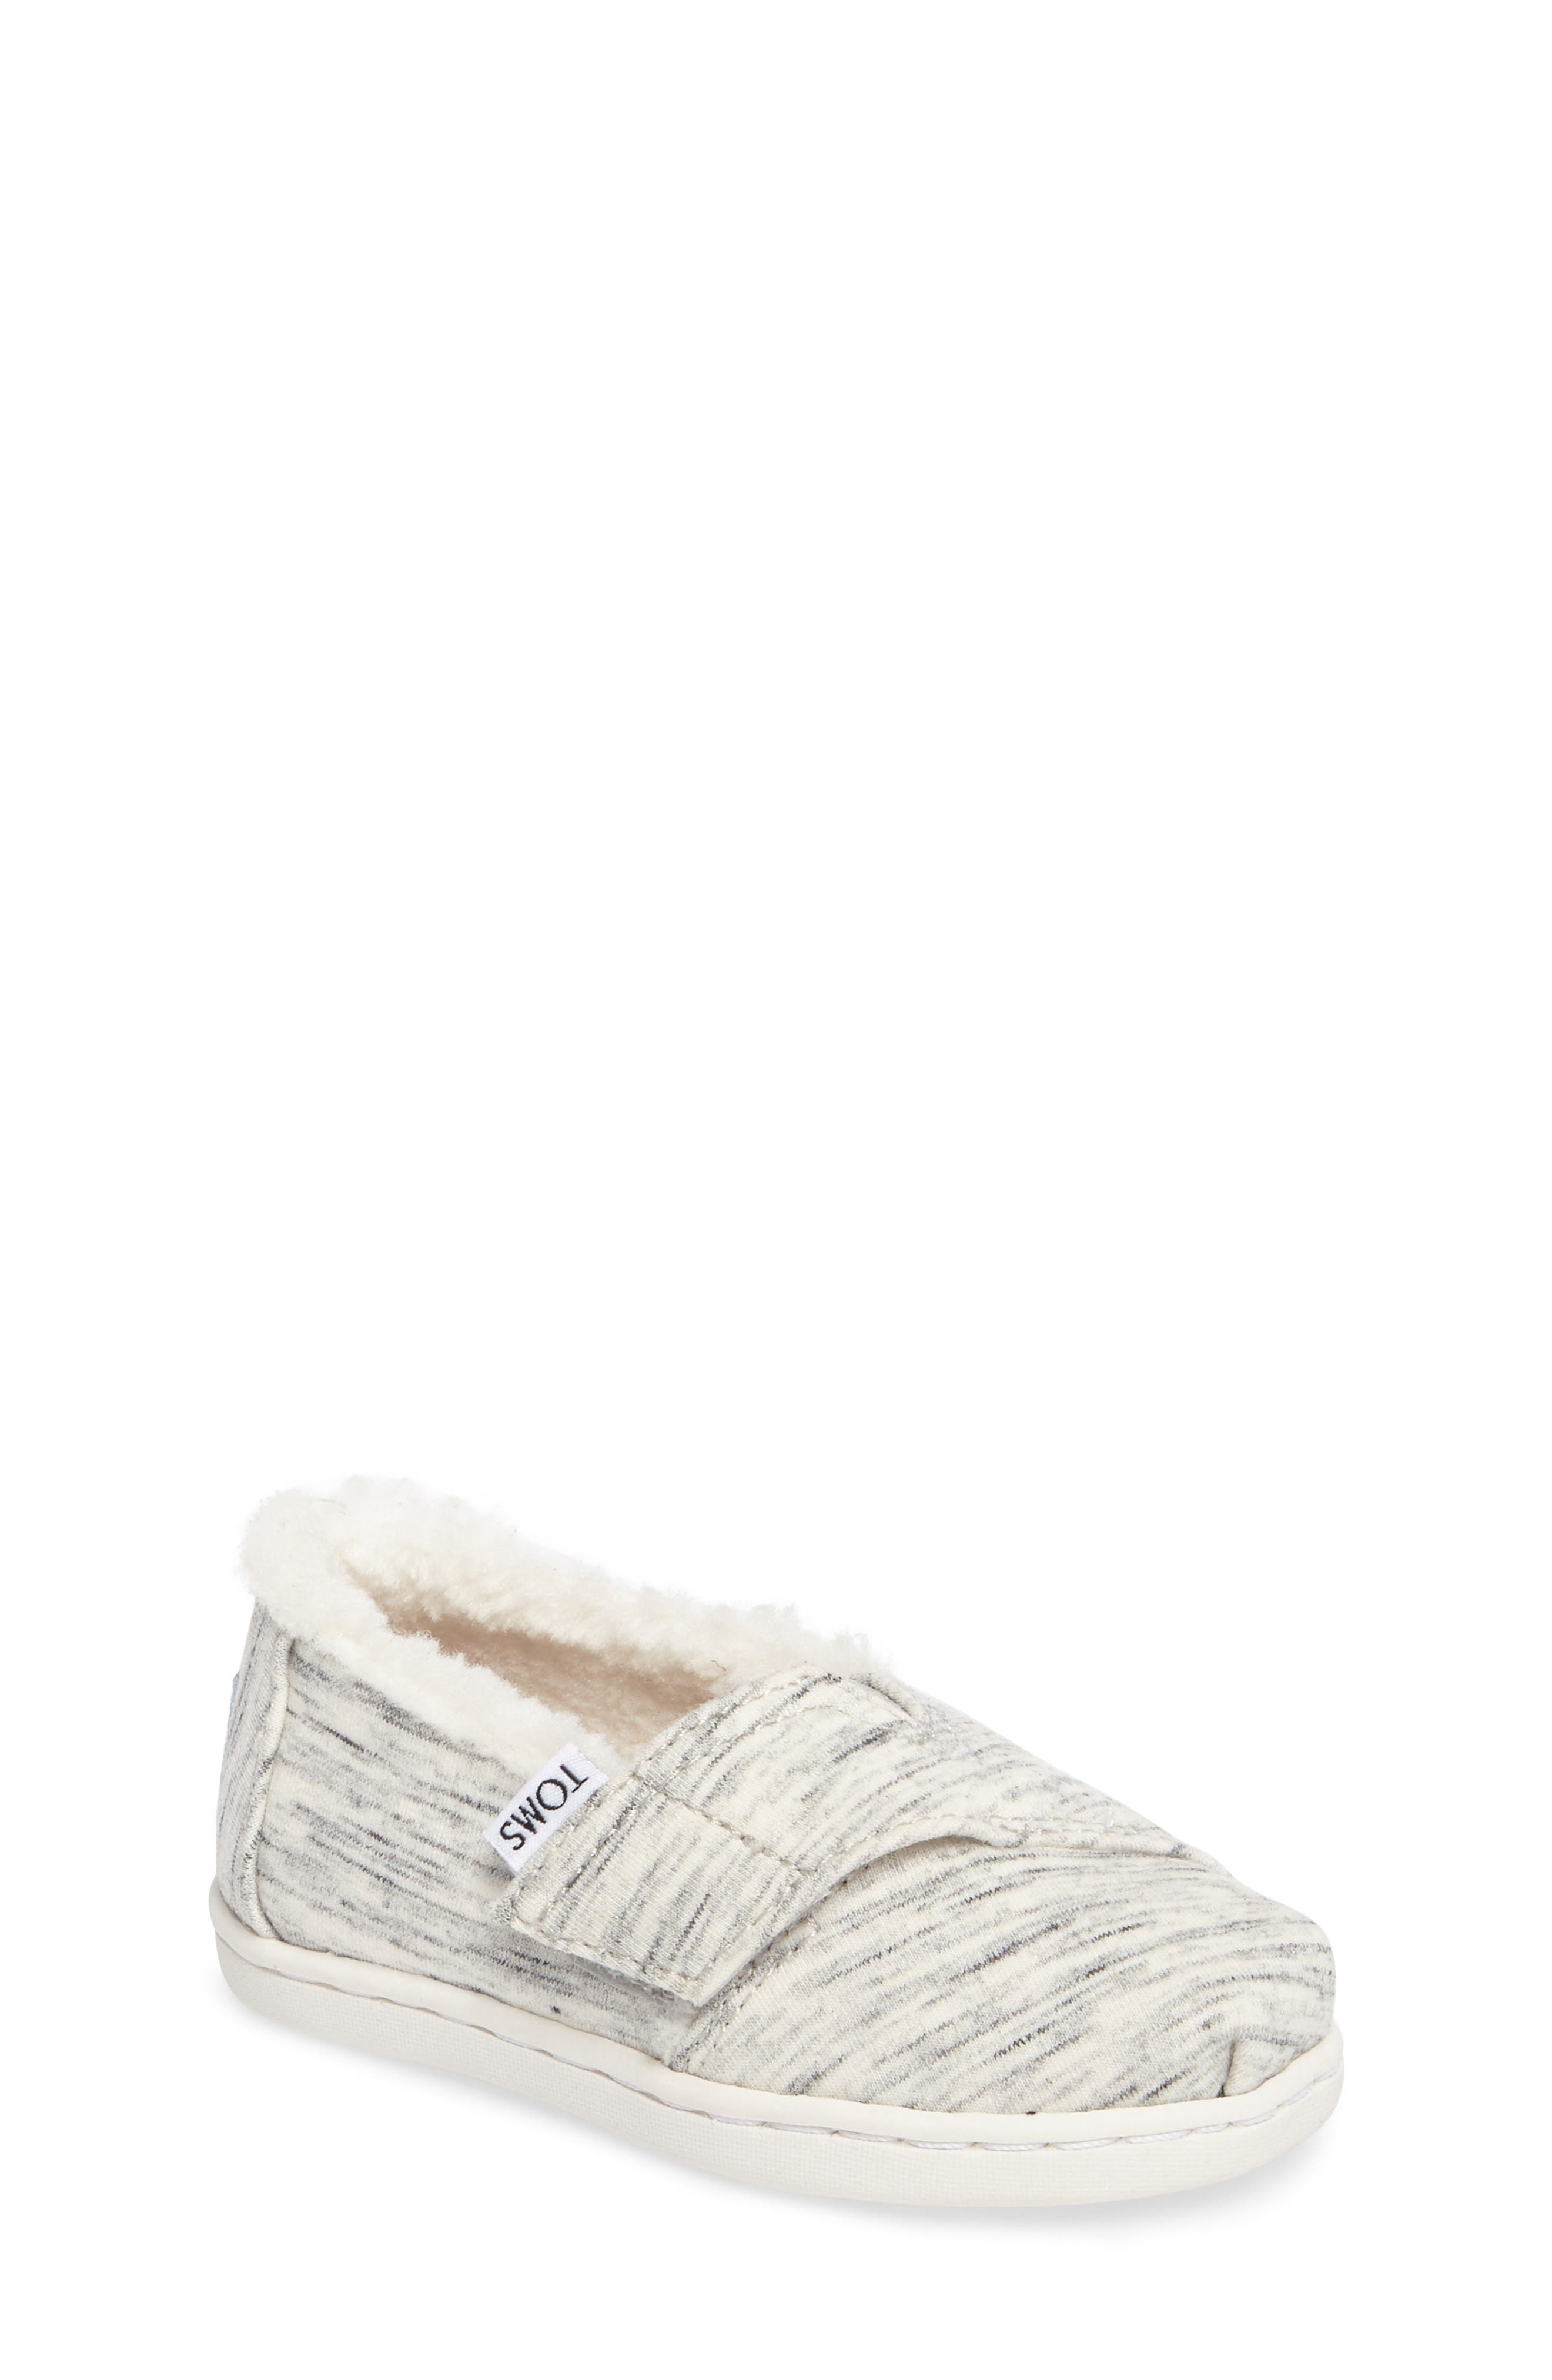 Classic - Tiny Herringbone Faux Shearling Lined Slip-On,                             Main thumbnail 1, color,                             BIRCH JERSEY/ FAUX SHEARLING